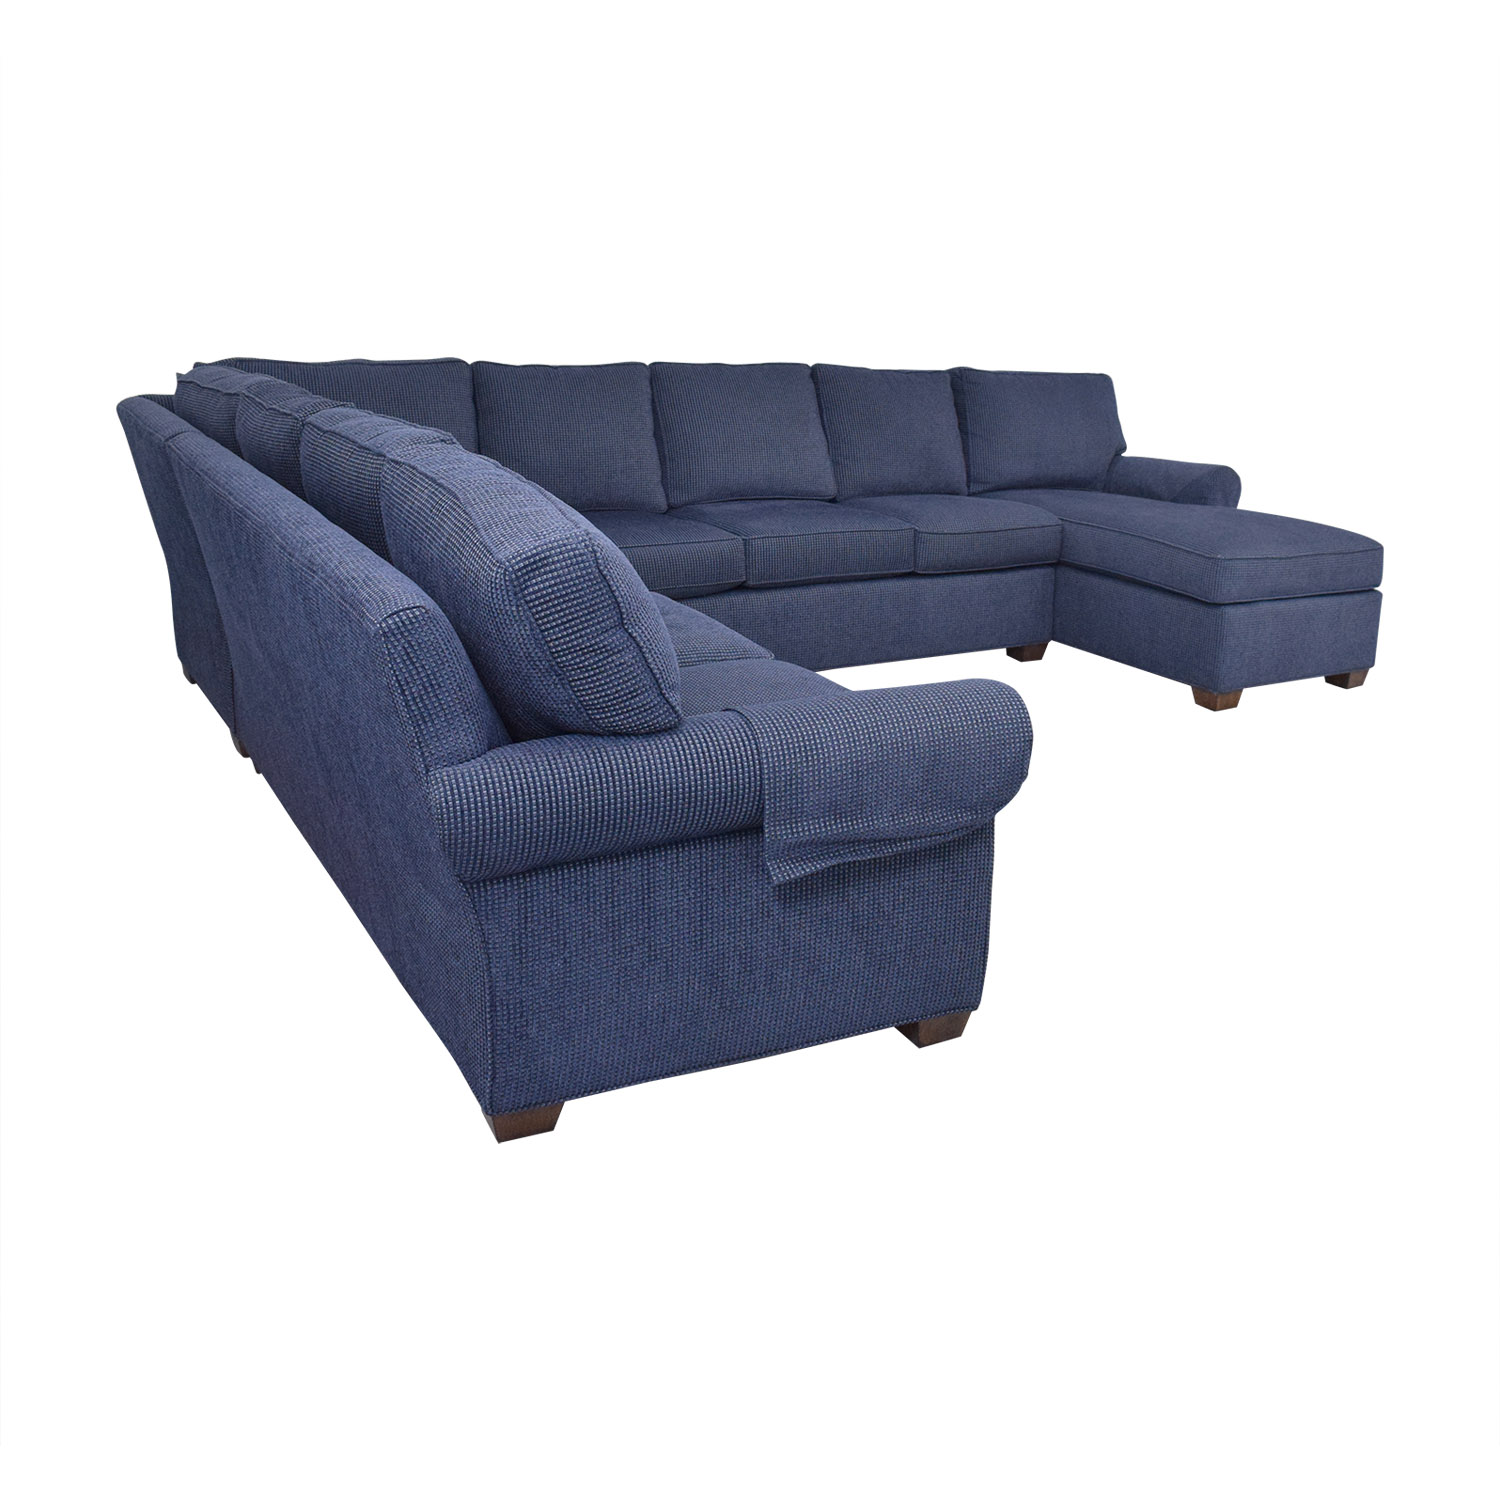 Wellesley Hall Rolled Arm Sectional Sofa with Chaise / Sectionals